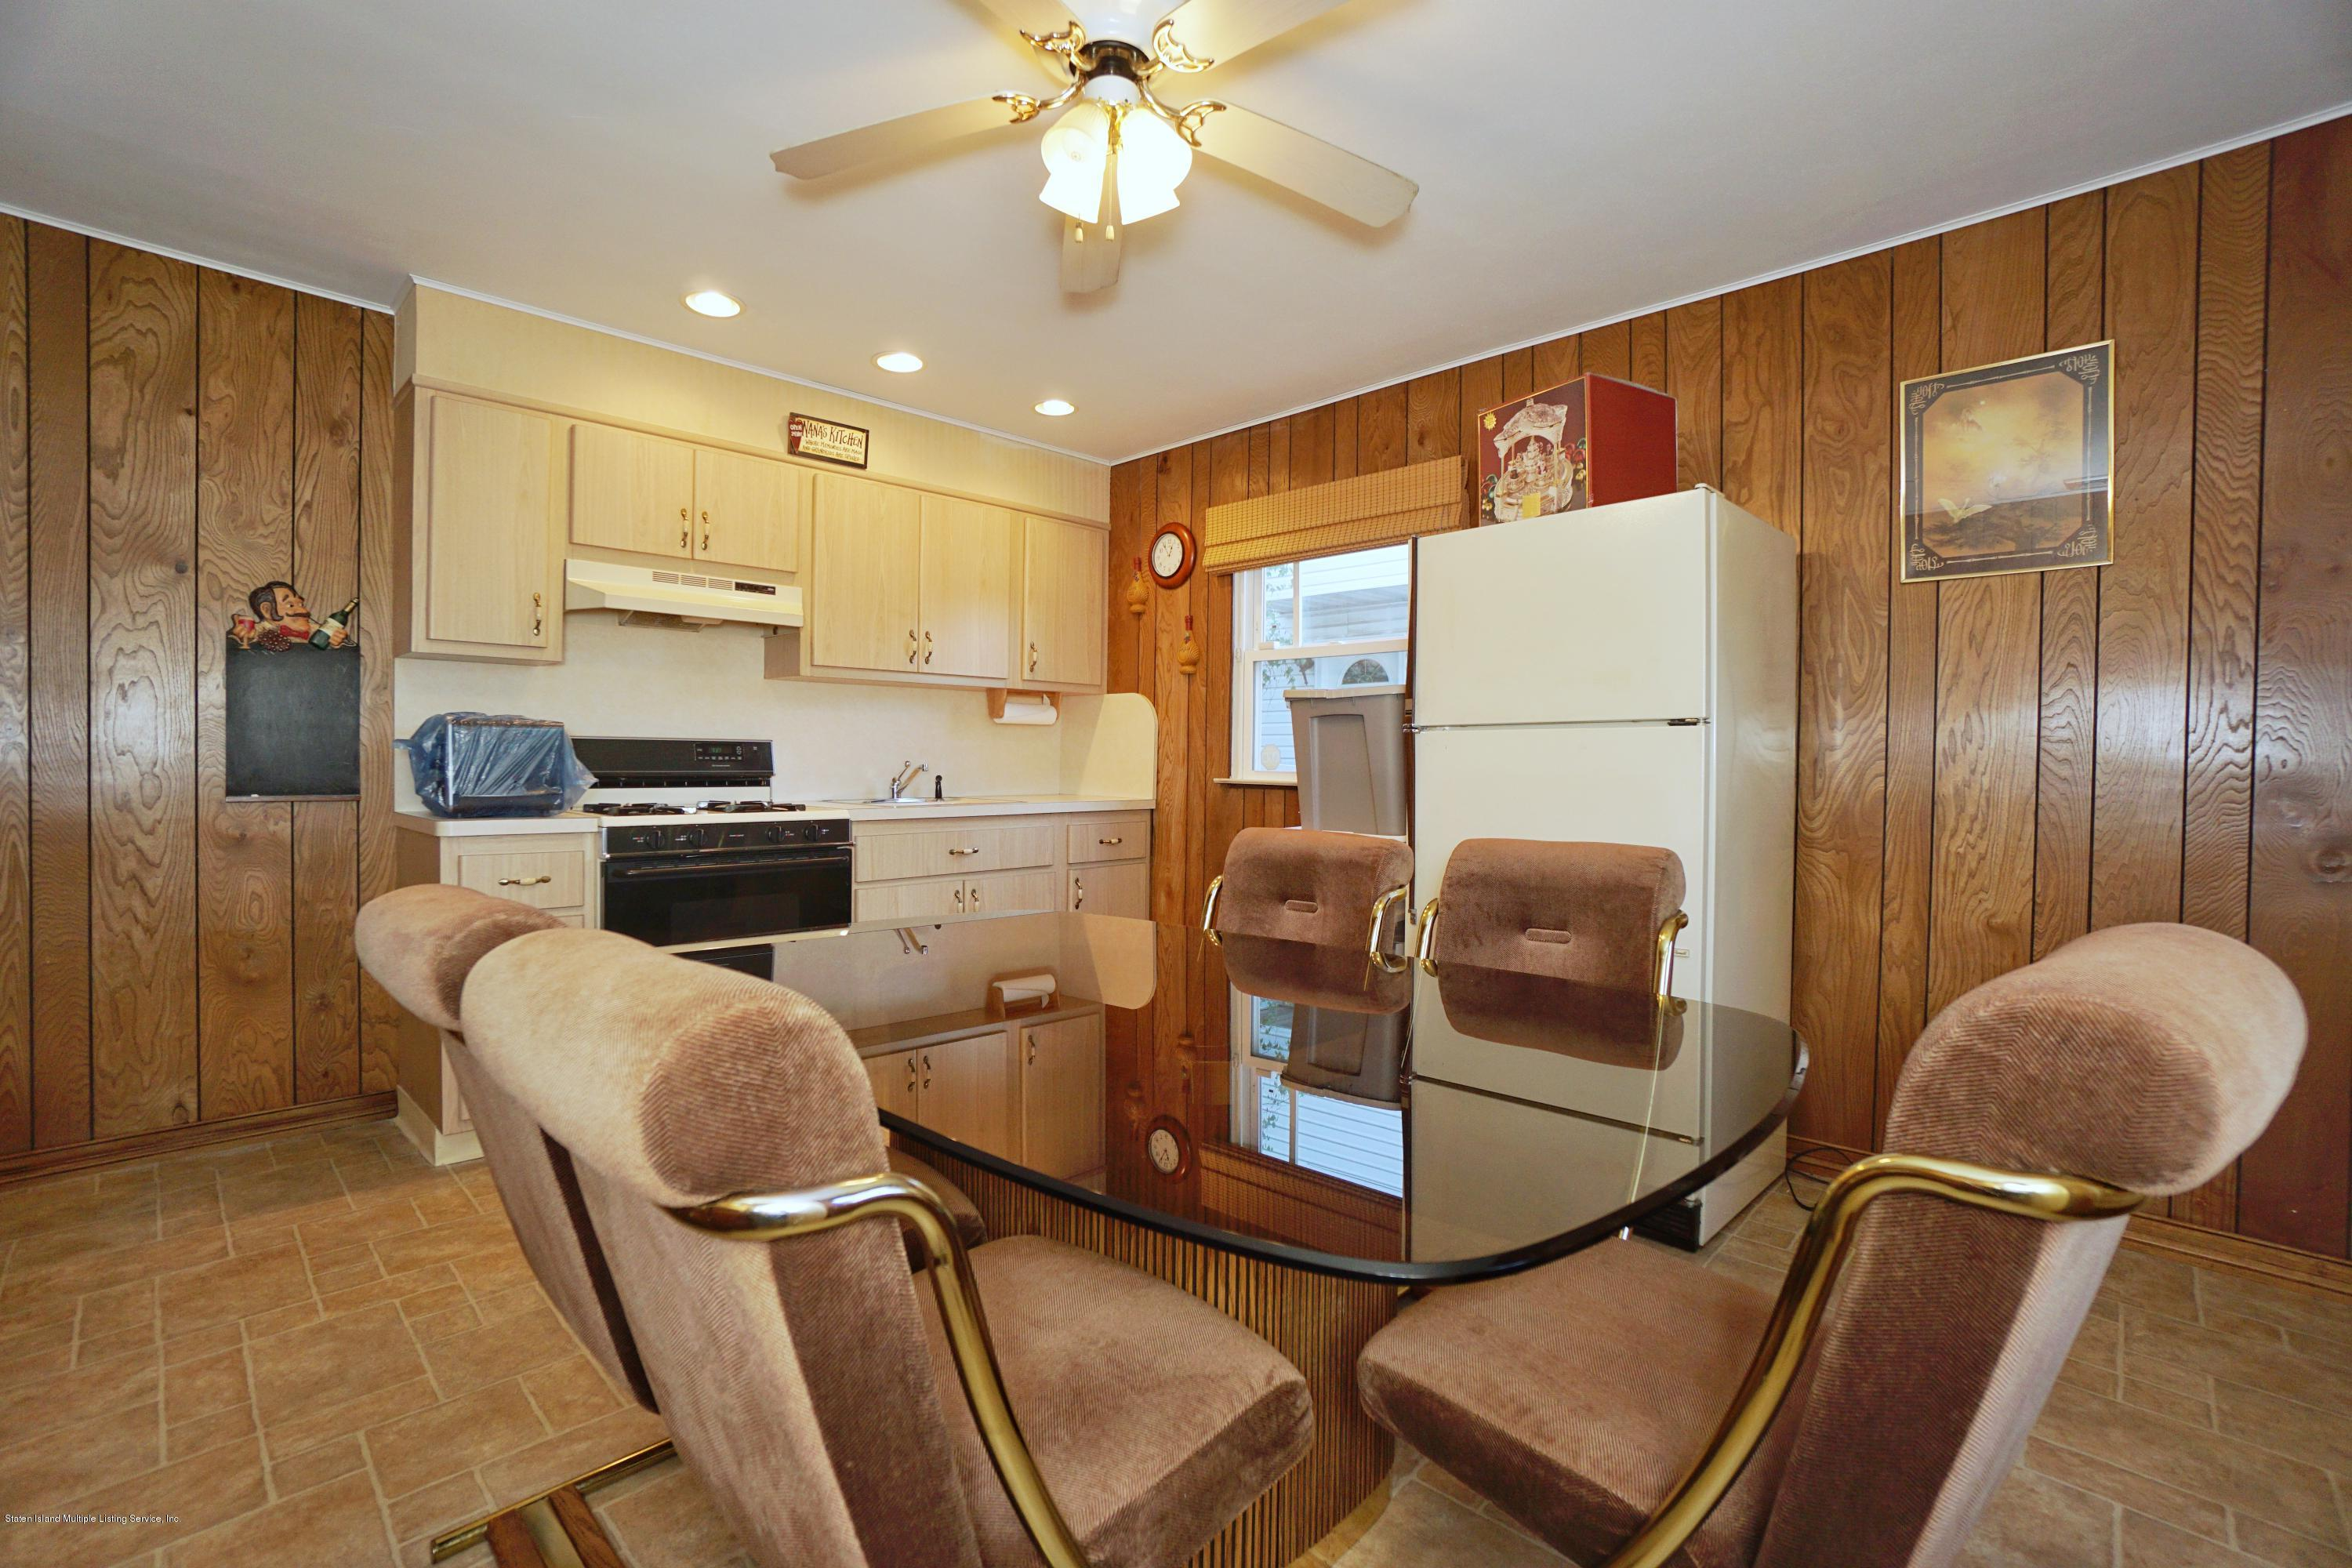 Single Family - Detached 77 Cedarview Avenue  Staten Island, NY 10306, MLS-1137631-28